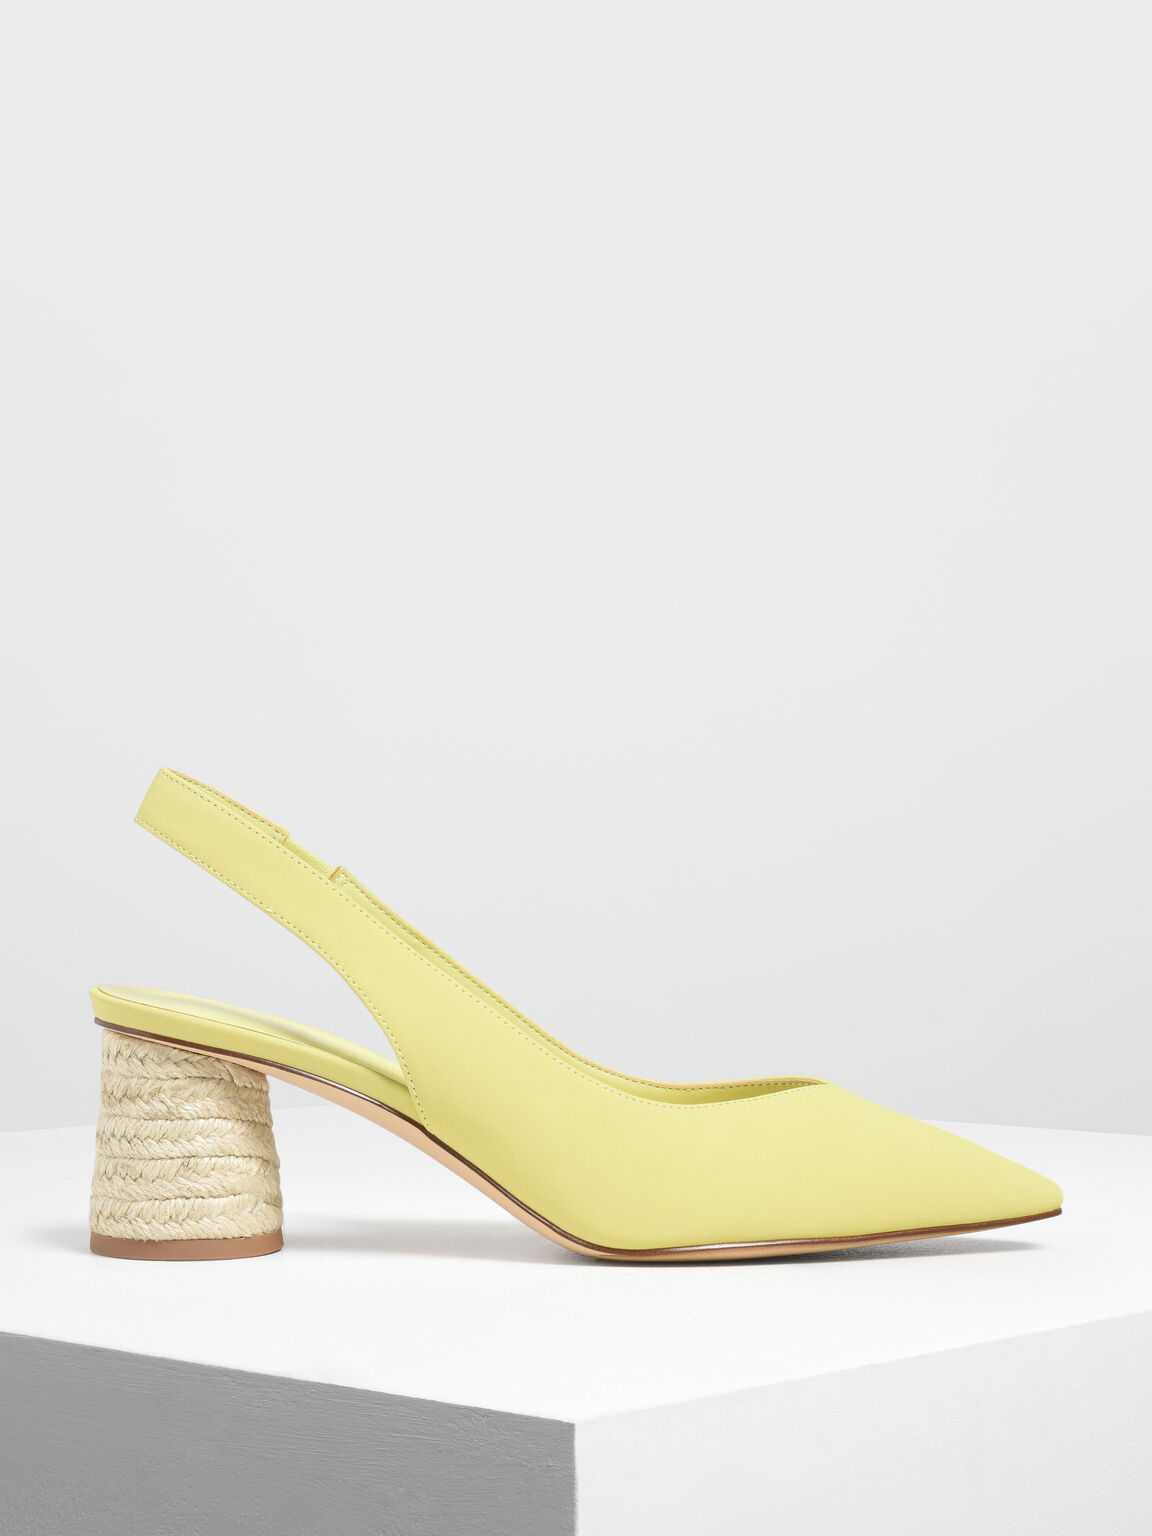 Cylindrical Espadrille Block Heel Slingbacks, Yellow, hi-res